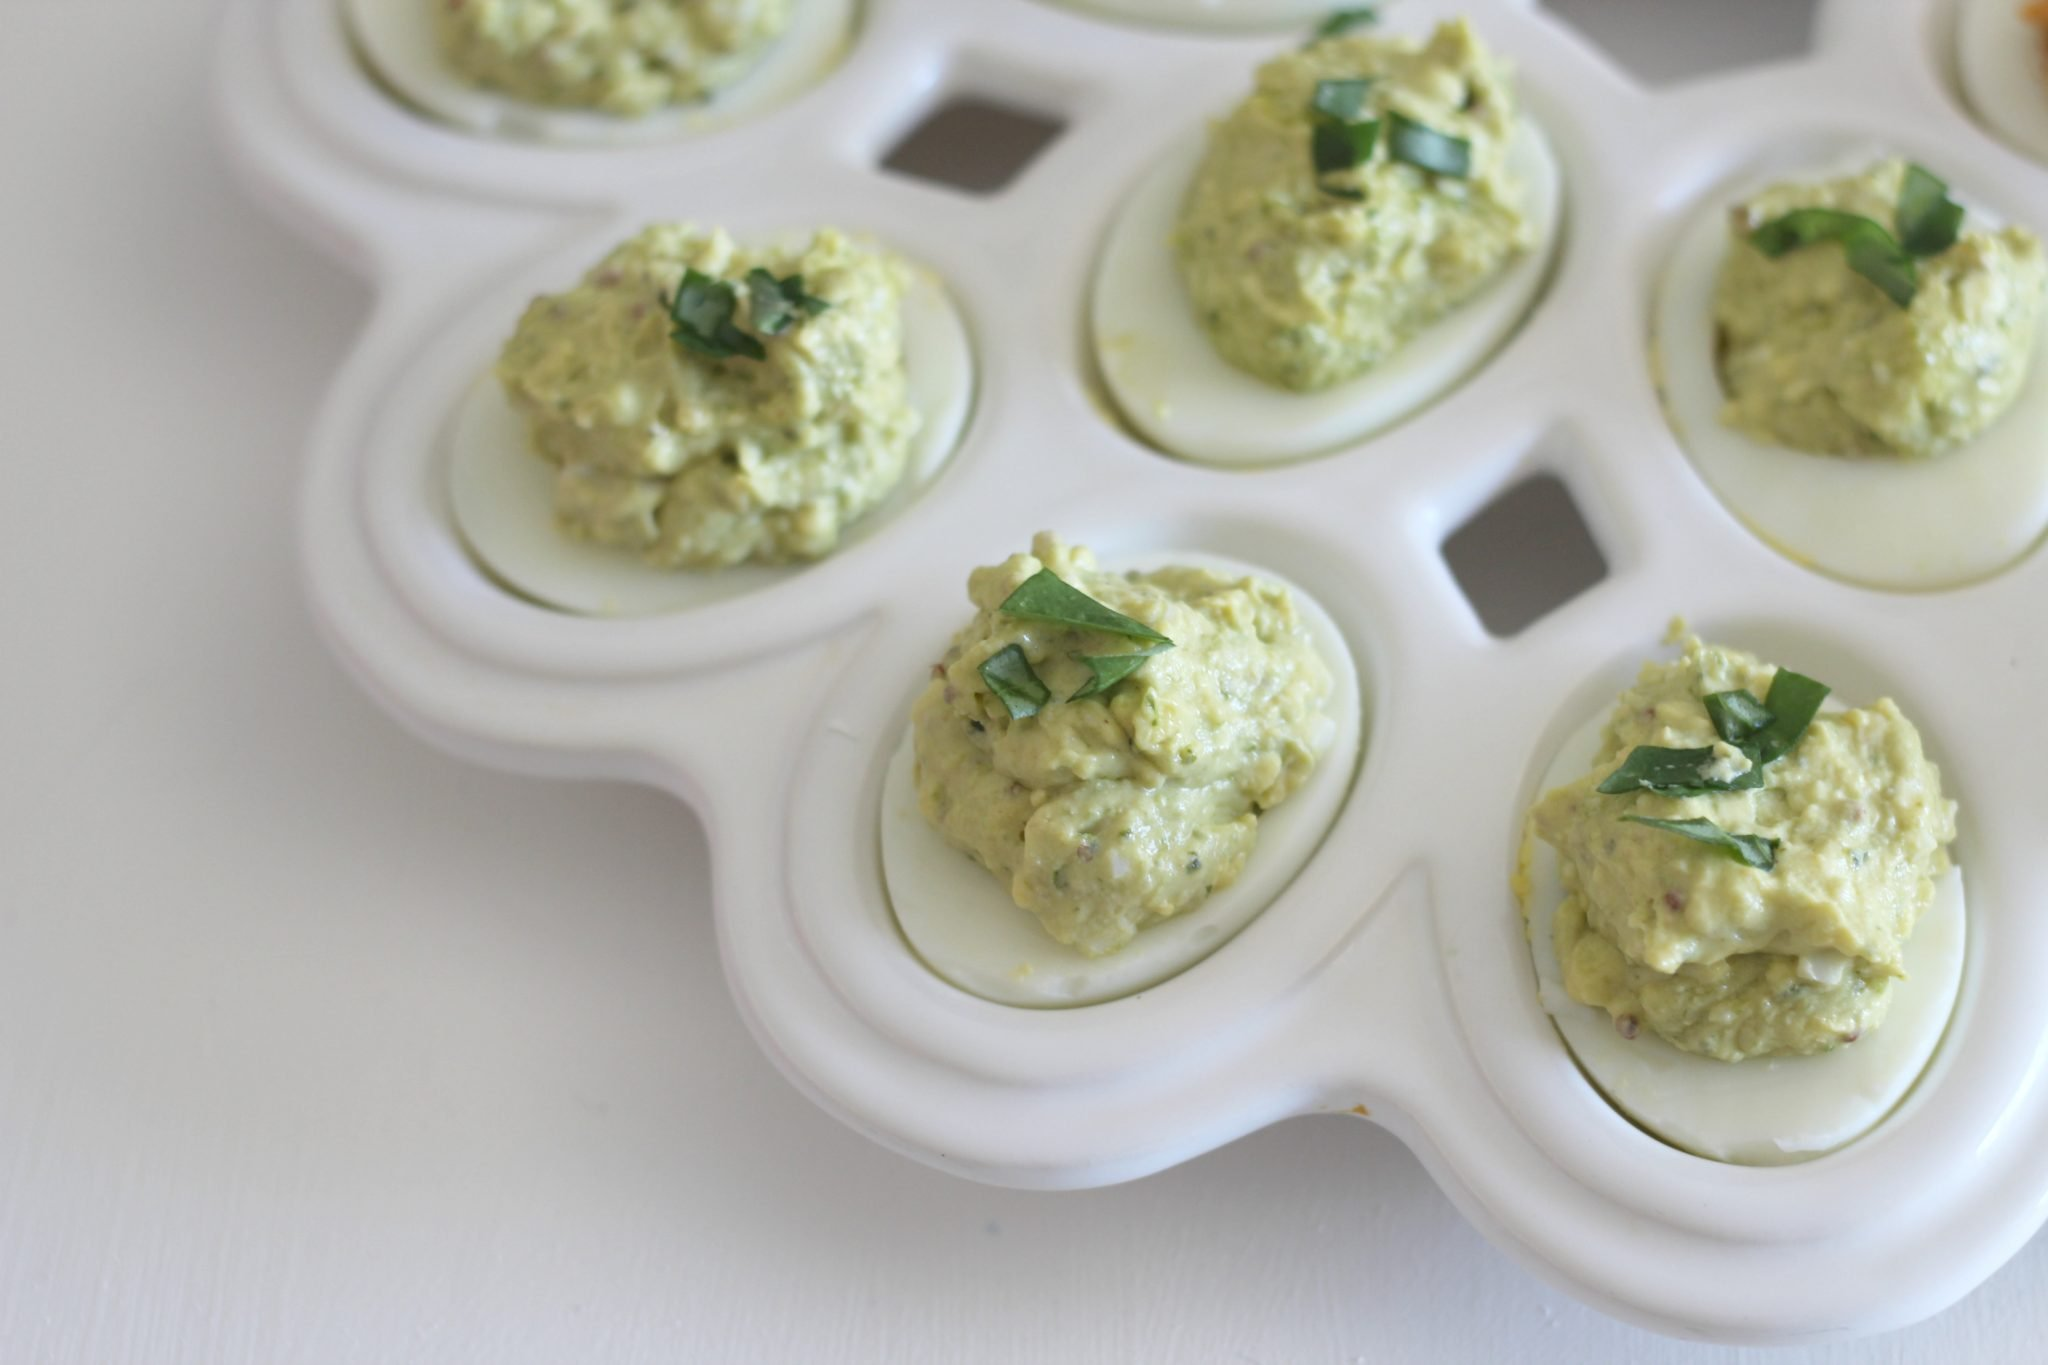 Garlic Pesto Deviled Eggs. These low carb appetizers are delicious and the recipe is simple!